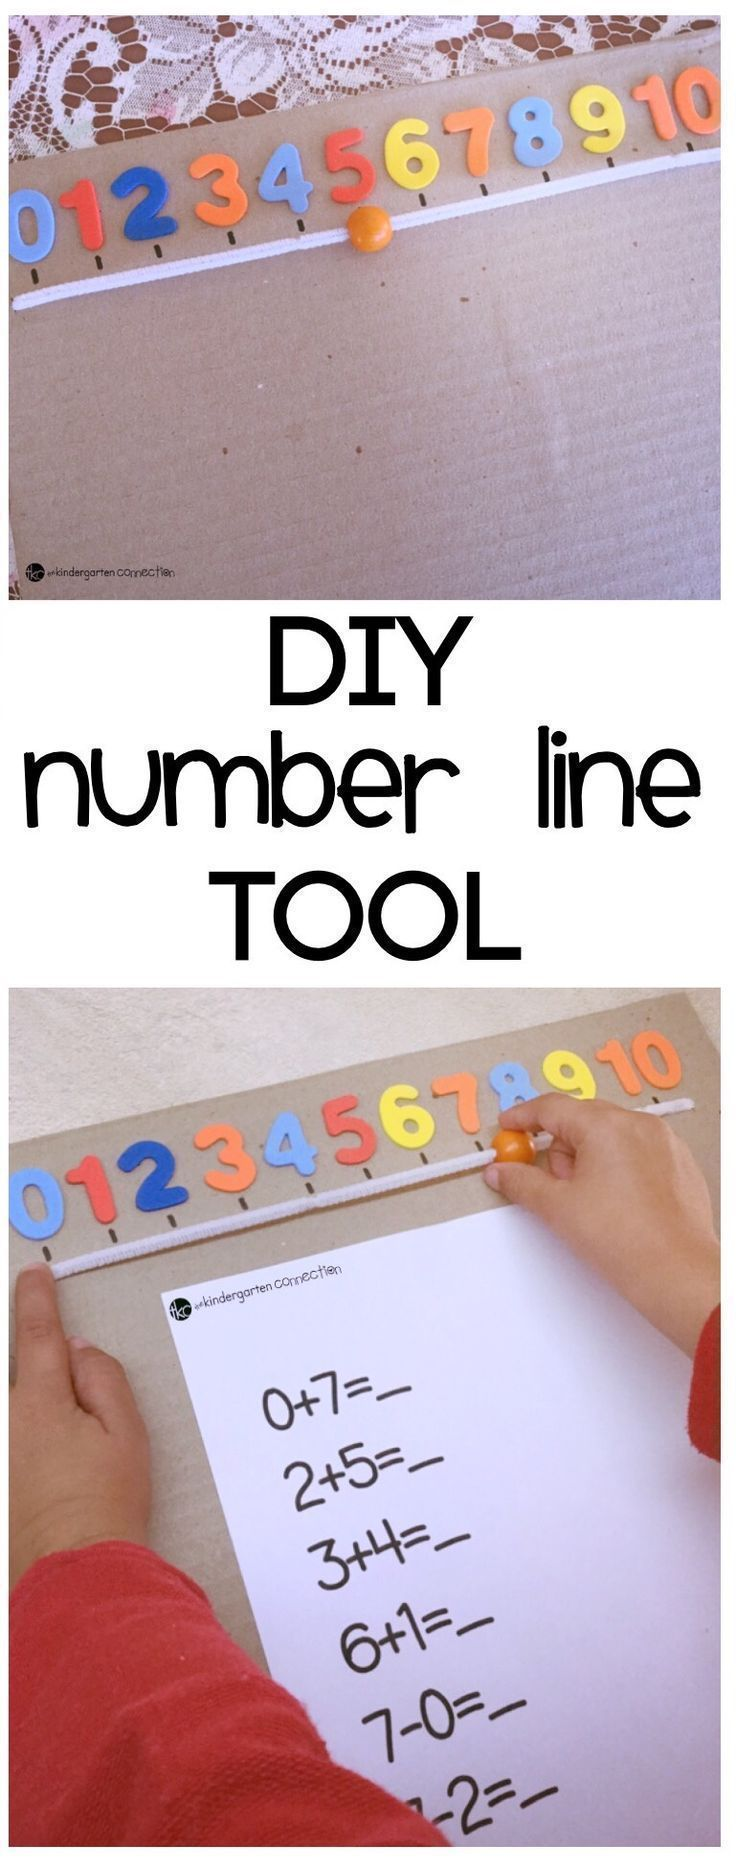 pin by tessa thimon on jeux maths pinterest youngest child count and math - Jeuxmaths 2